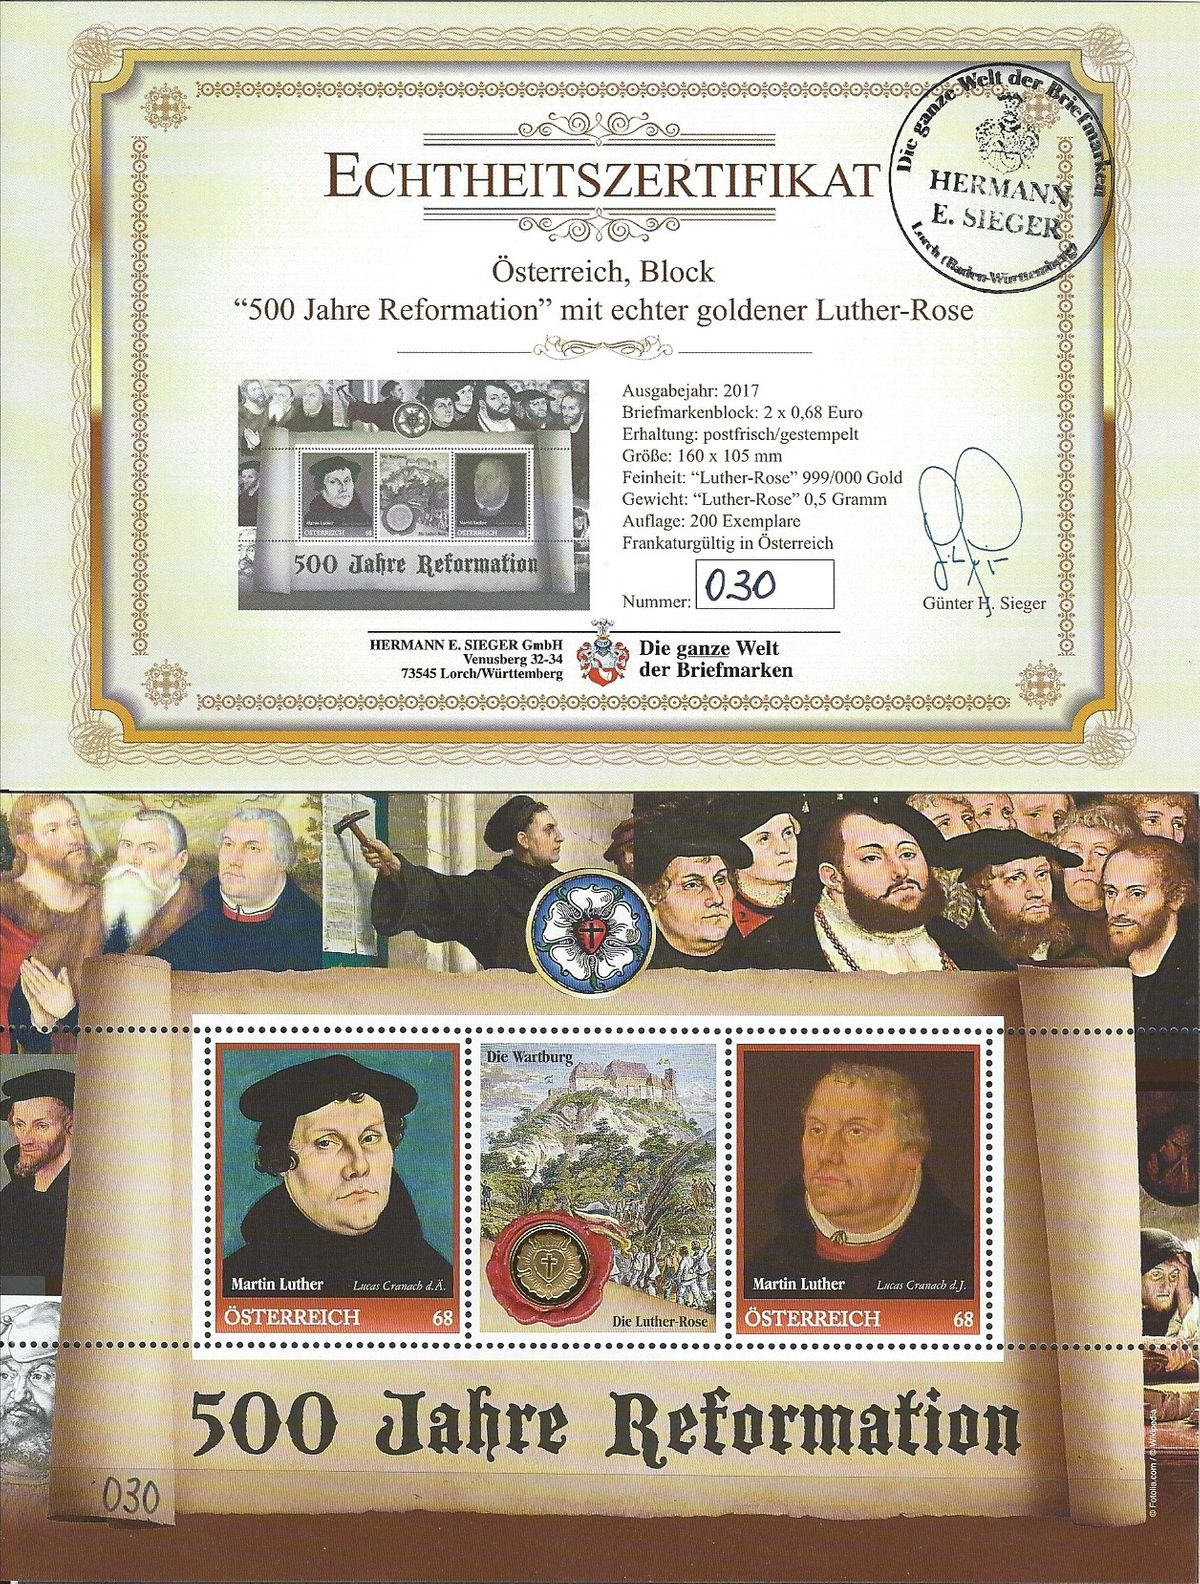 Luther-Rose, Martin Luther, Luther Briefmarken, goldene Lutherrose